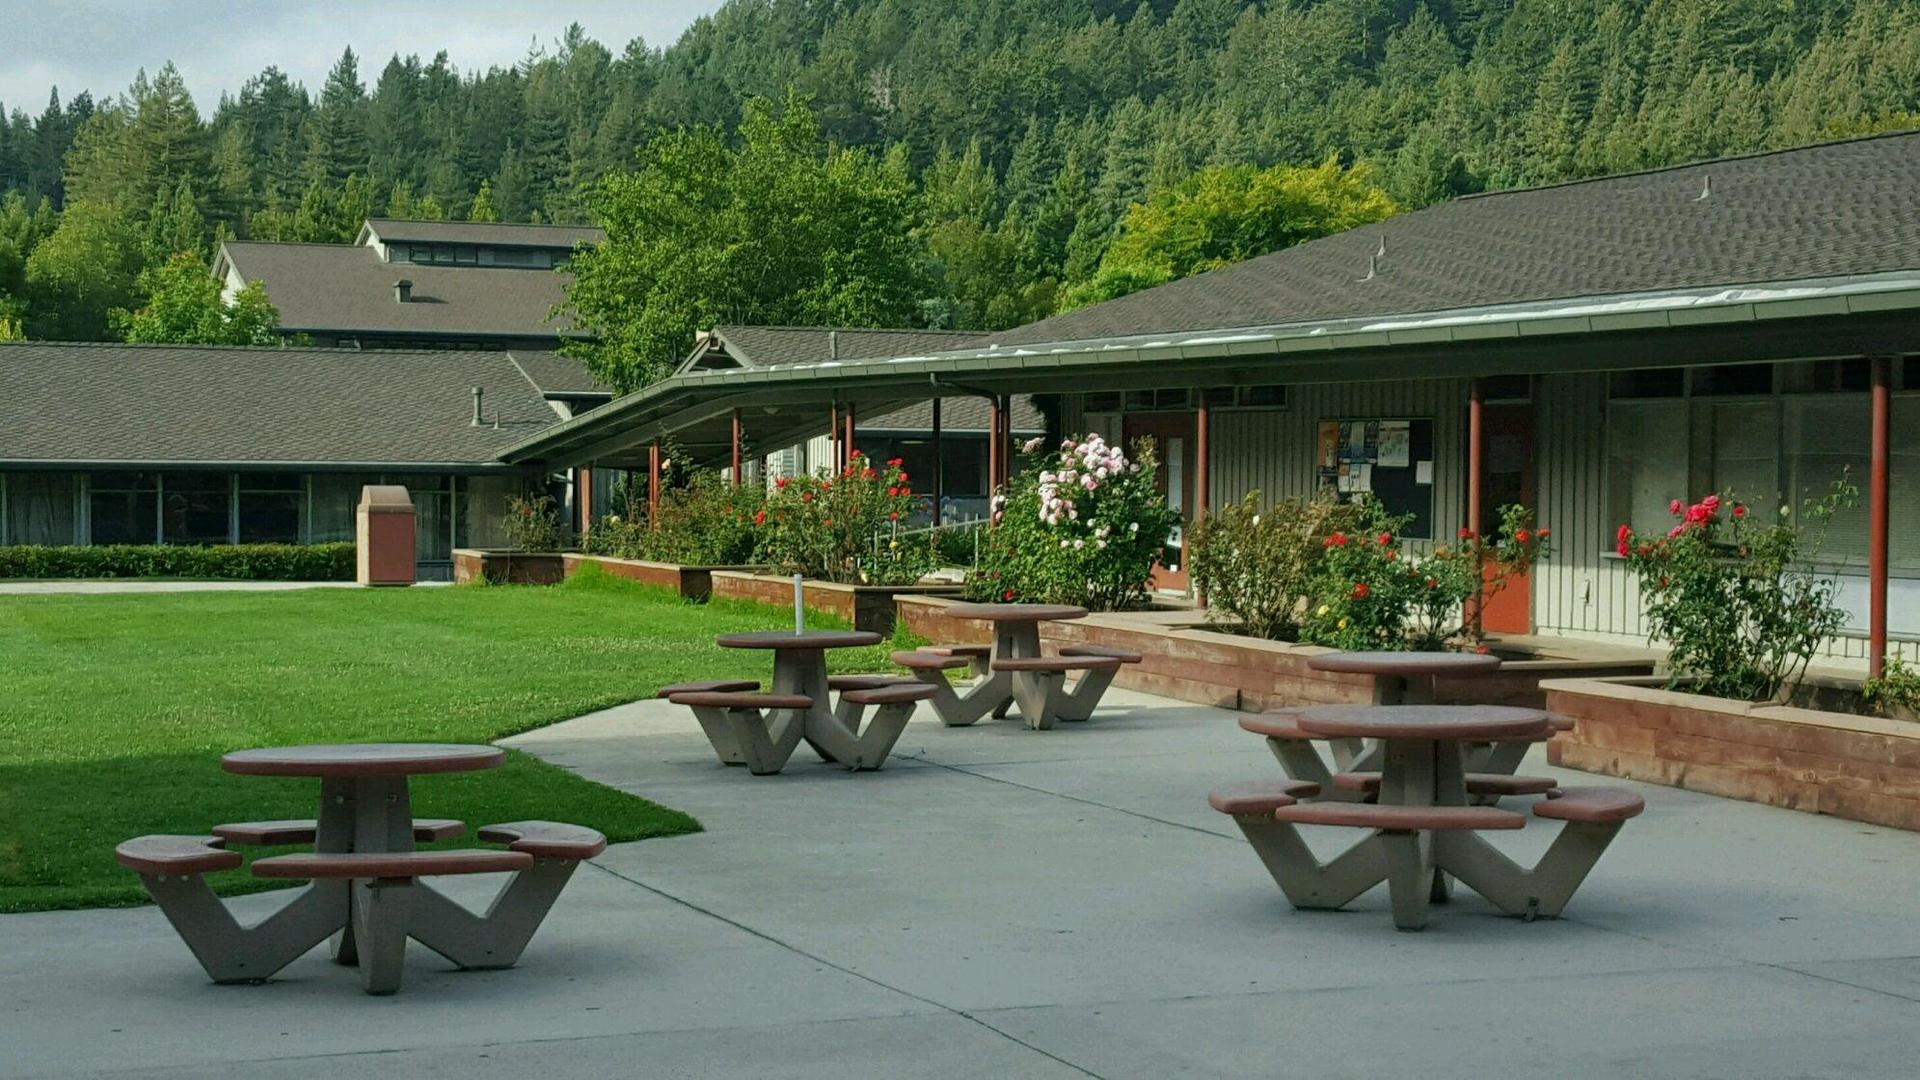 Picture of SLVHS quad area